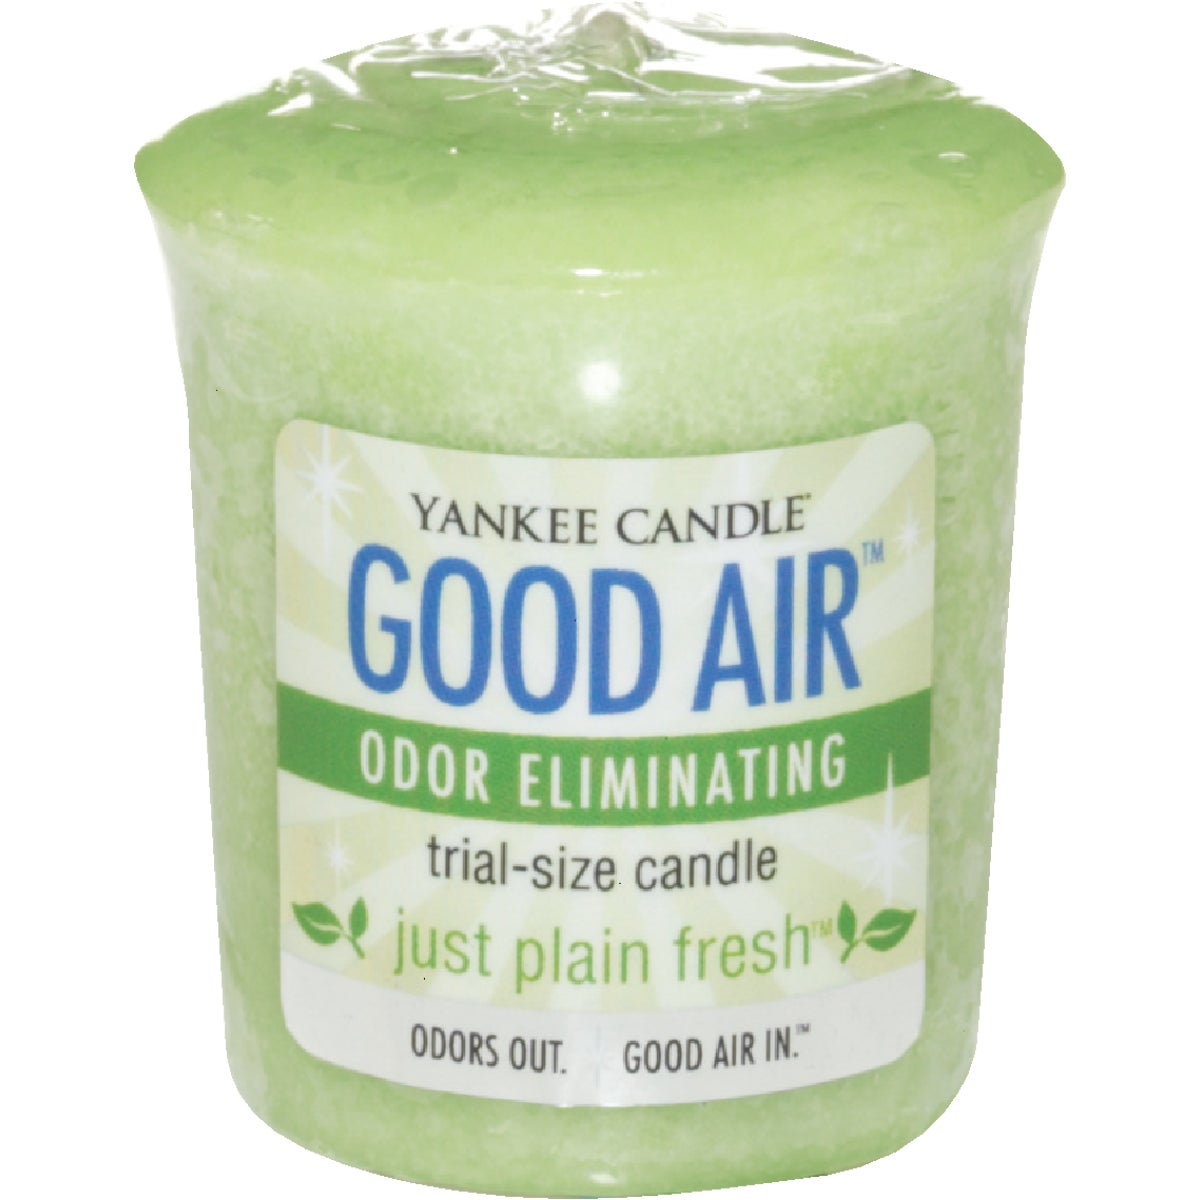 GOOD AIR VOTIVE CANDLE - 1254228 by Yankee Candle Co